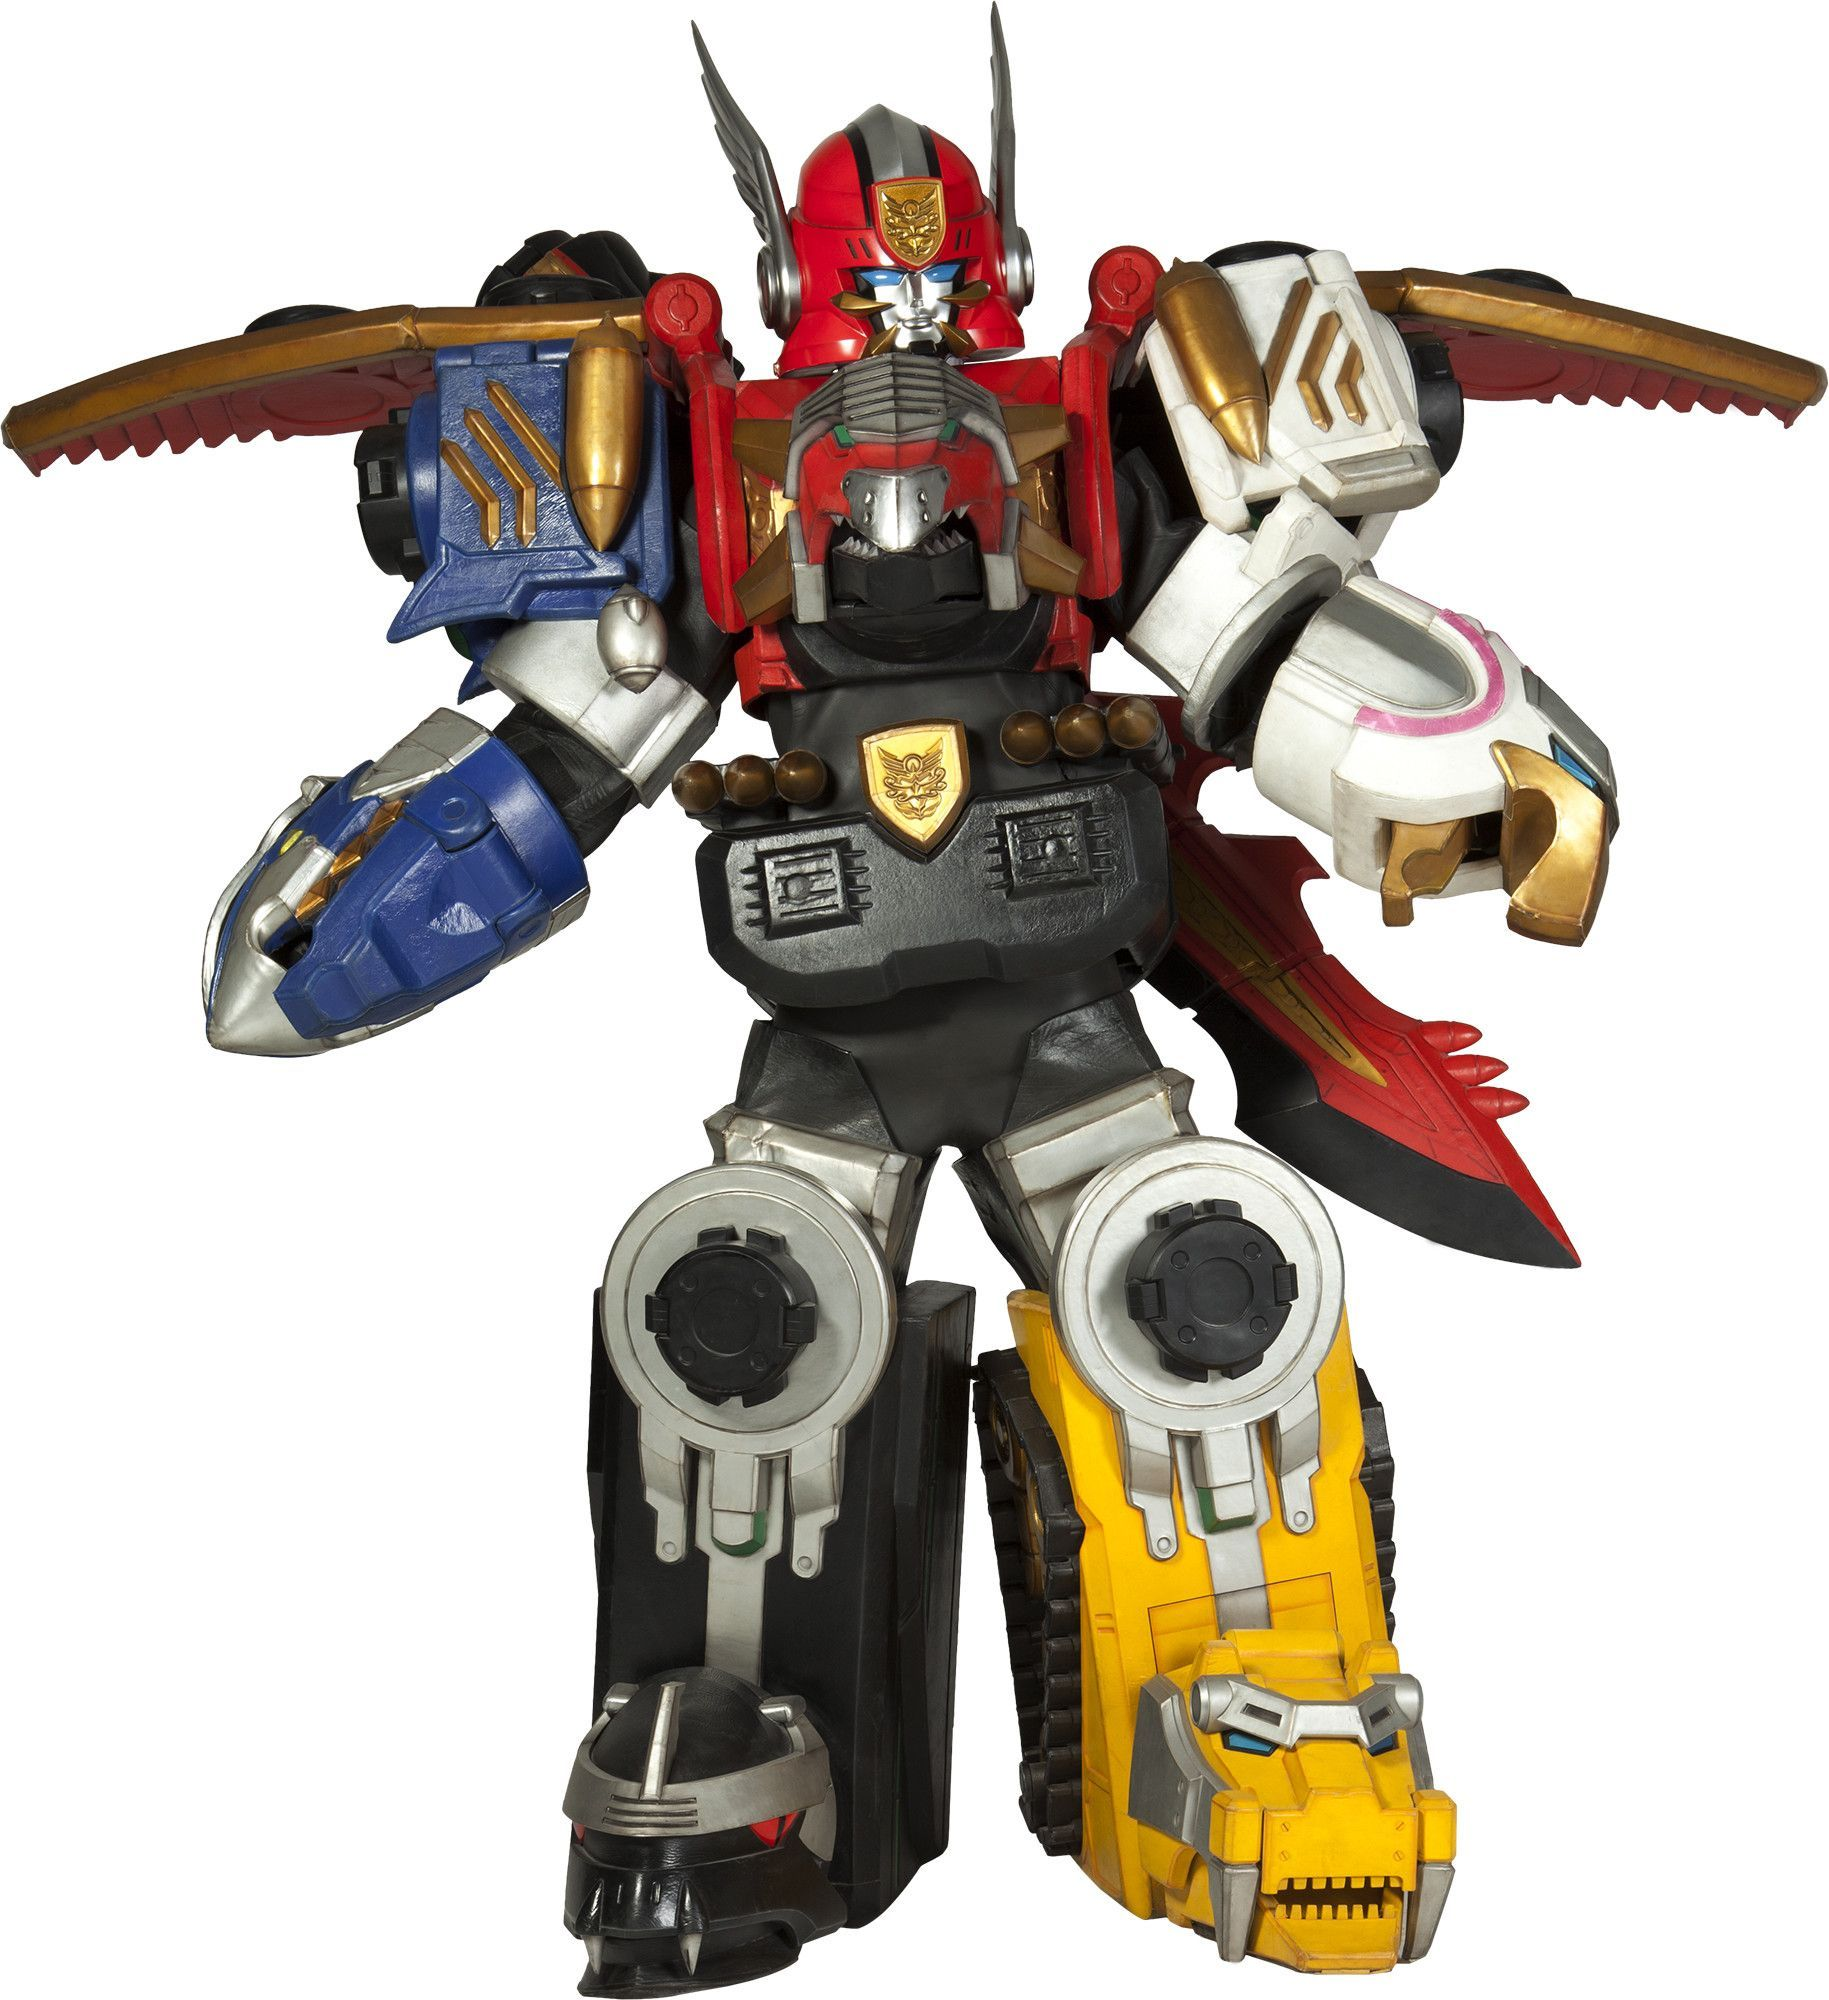 Megazord - Power Rangers Megaforce Cardboard Stand-Up | Products ...